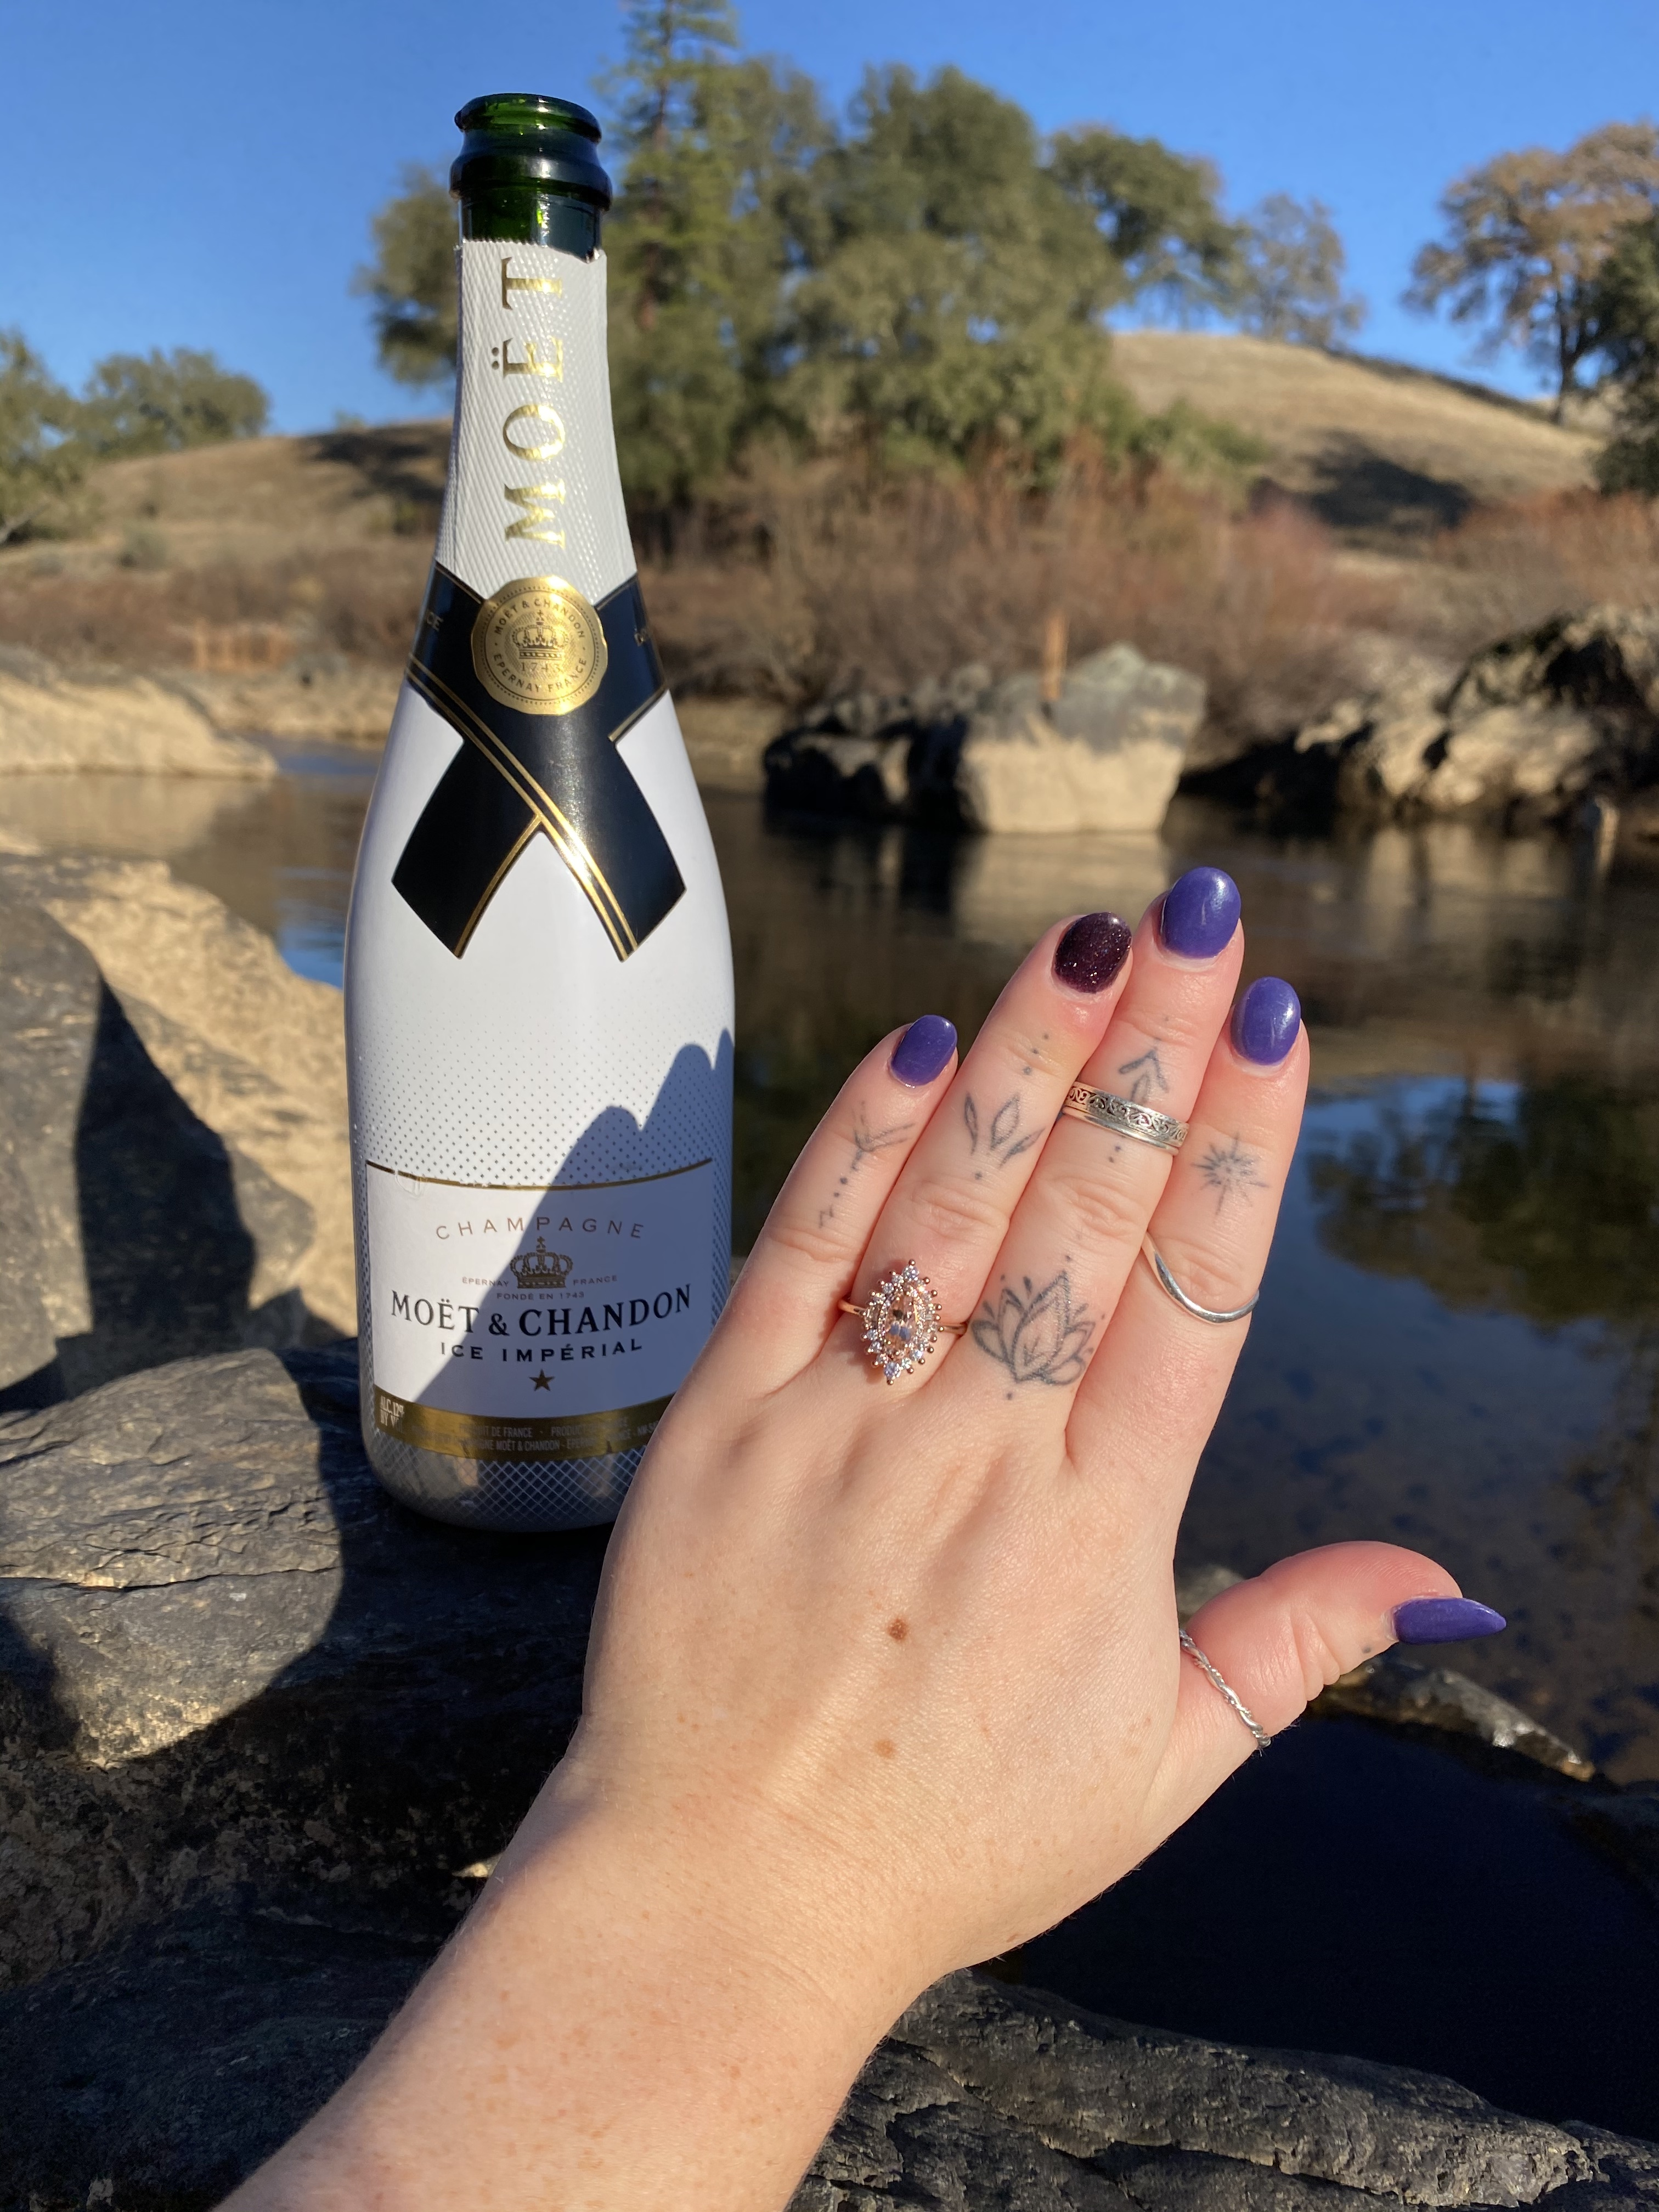 Morganite marquis engagement ring with champagne bottle